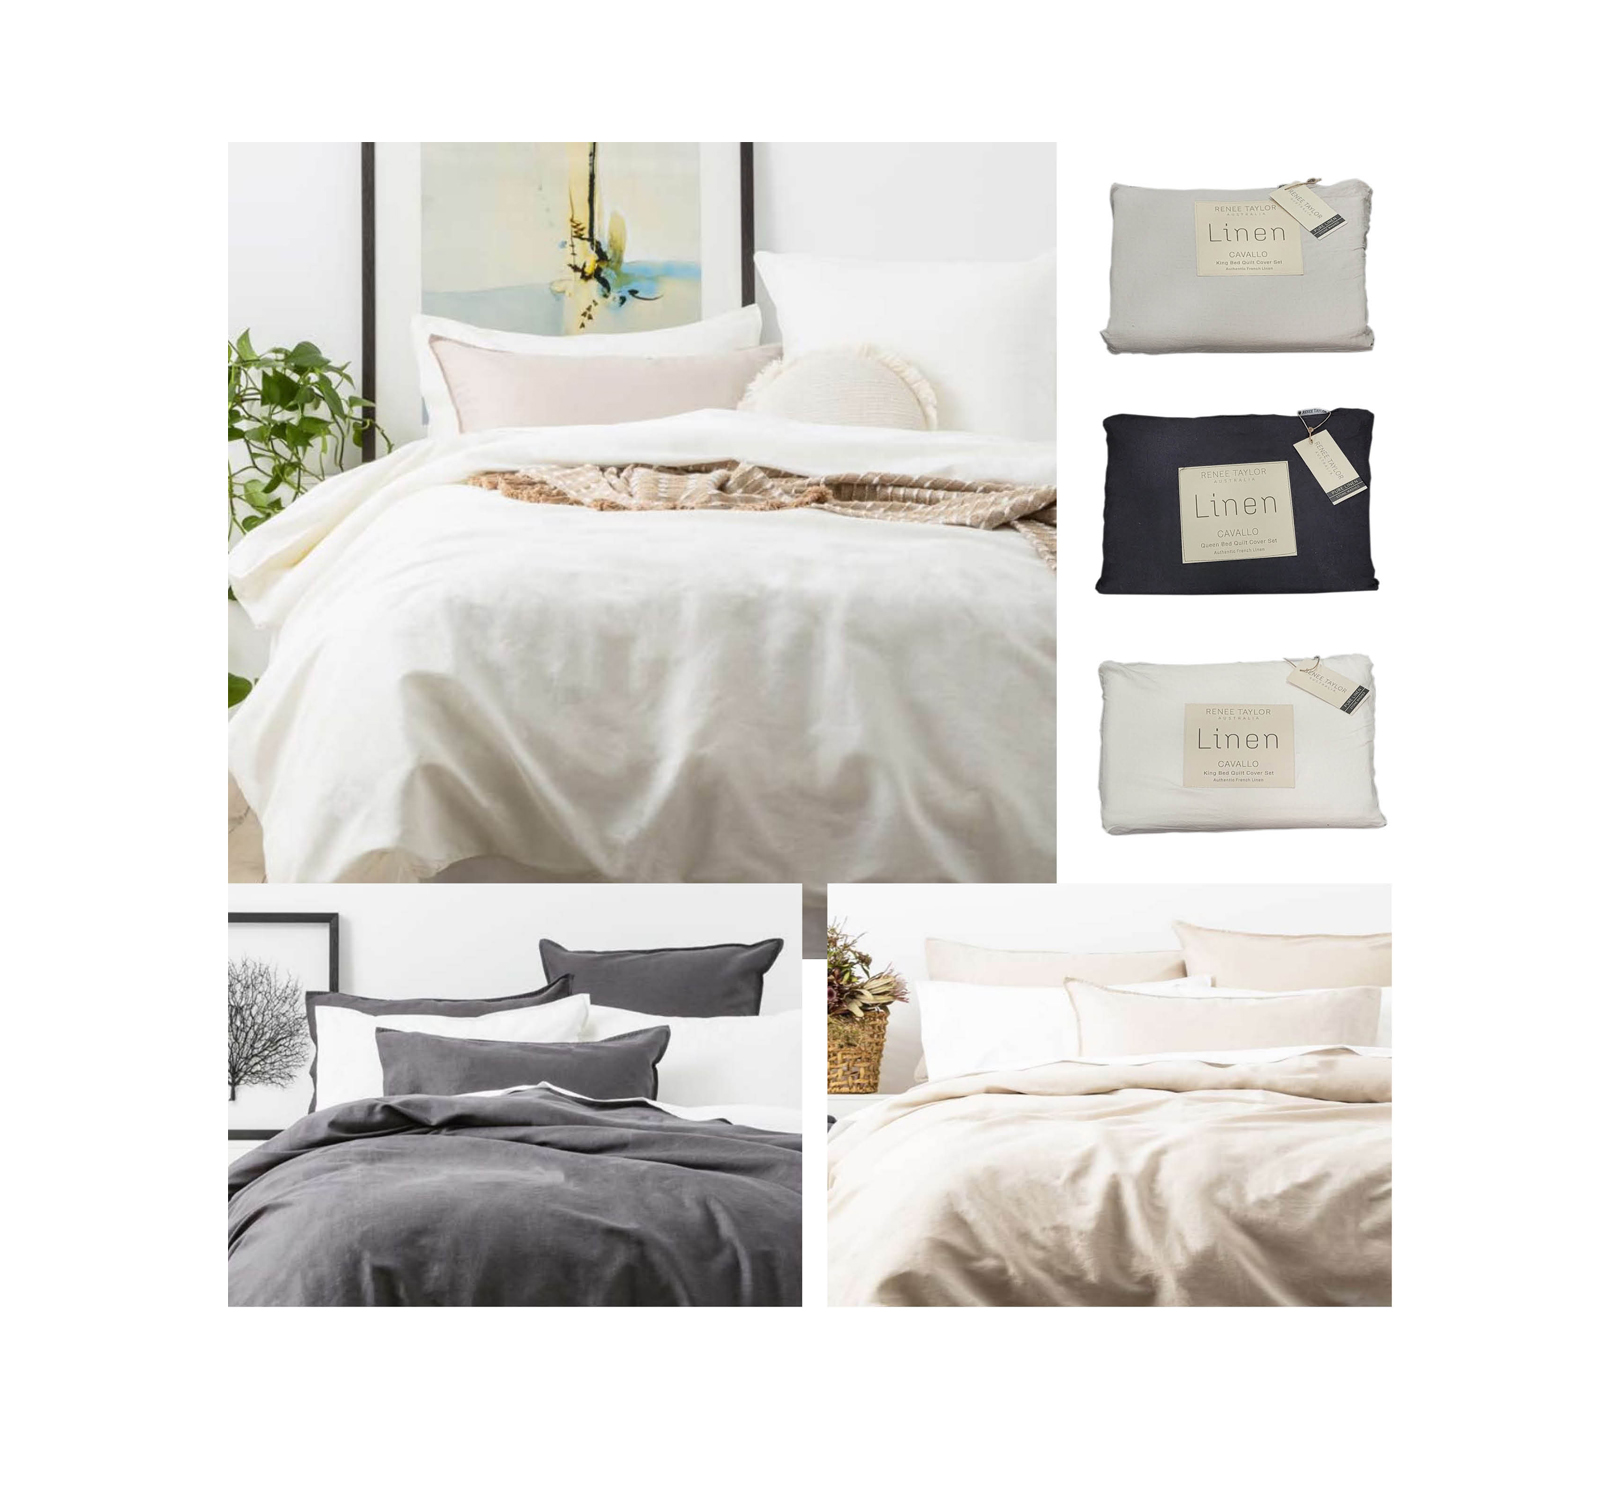 'Cavallo French Linen from